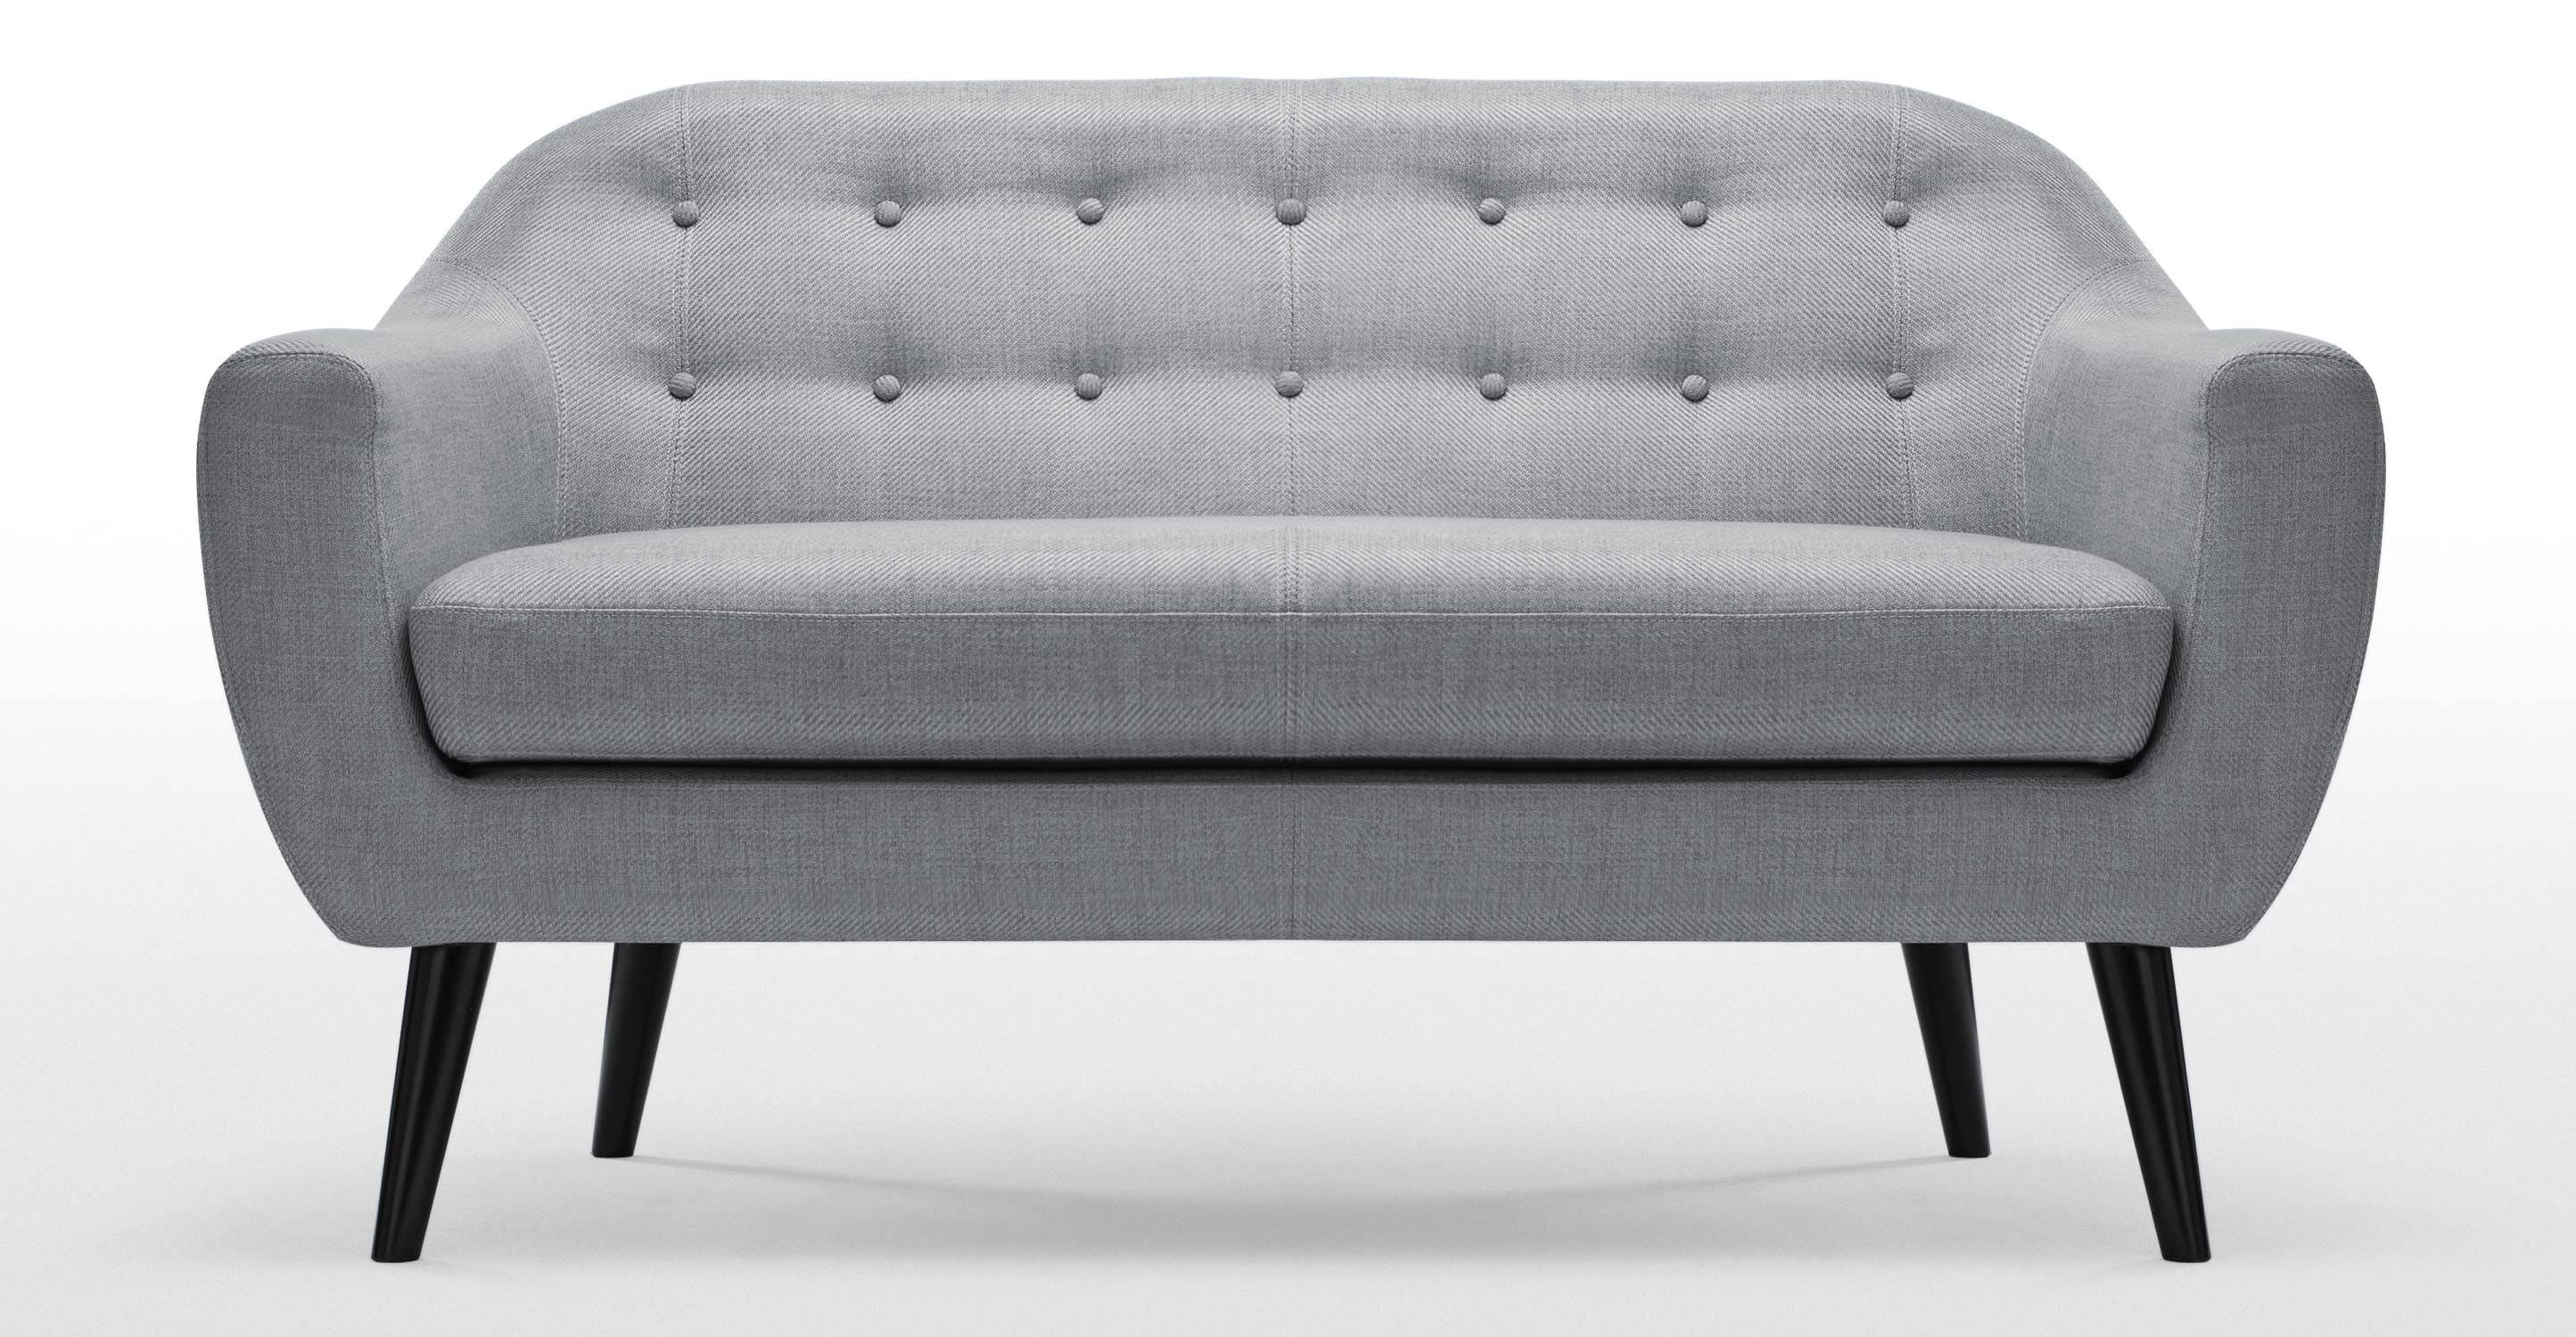 Ritchie 2 Seater Sofa In Pearl Grey | Made regarding Black 2 Seater Sofas (Image 26 of 30)